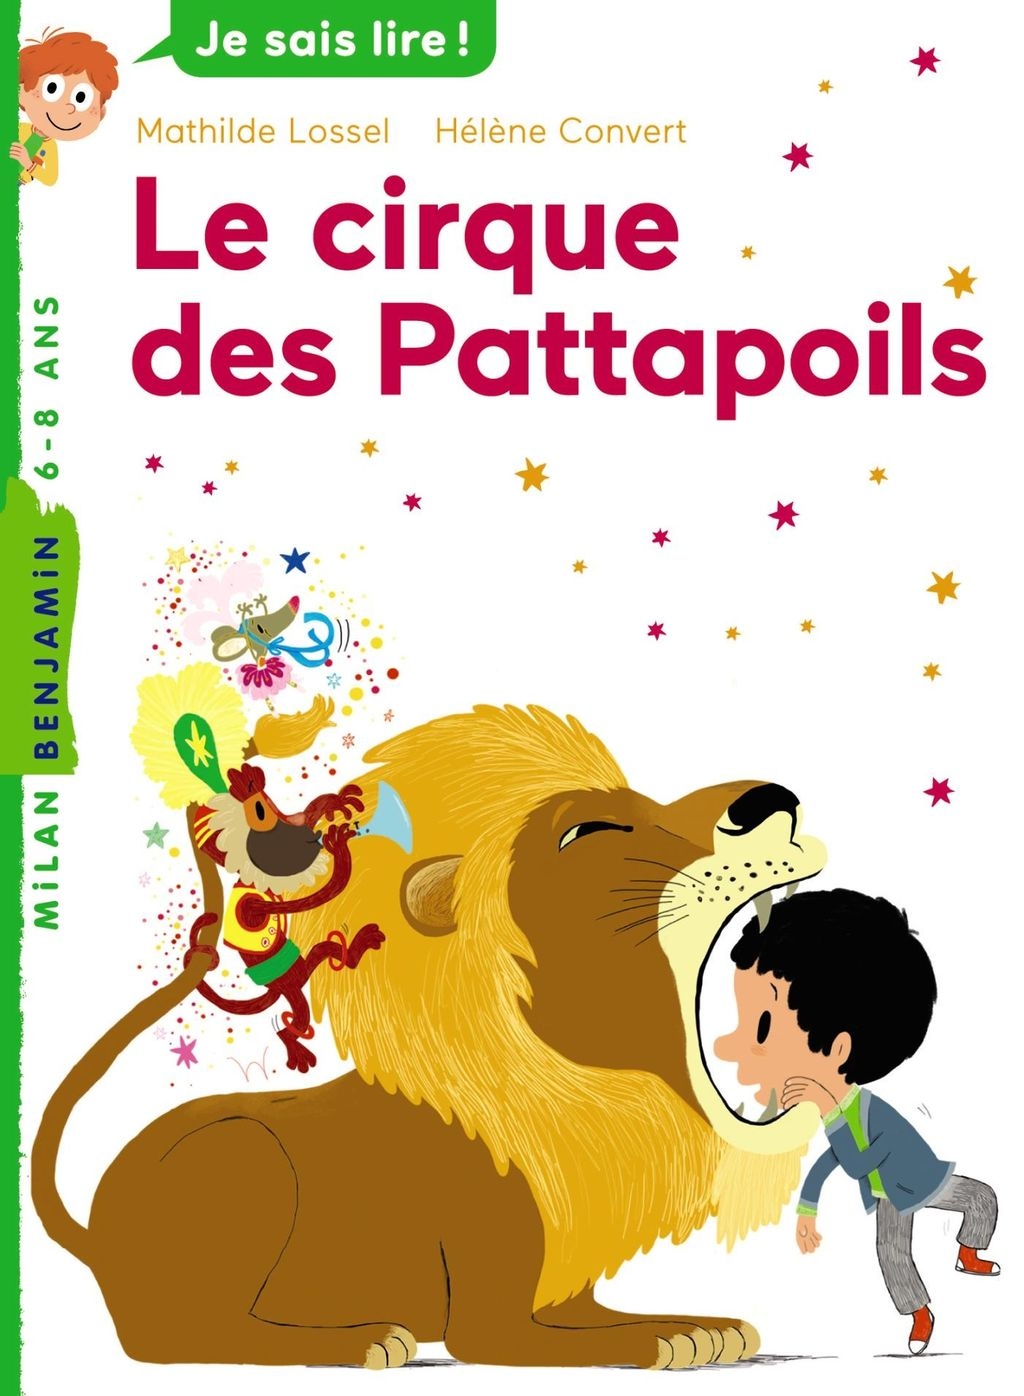 « Le cirque des Pattapoils » cover